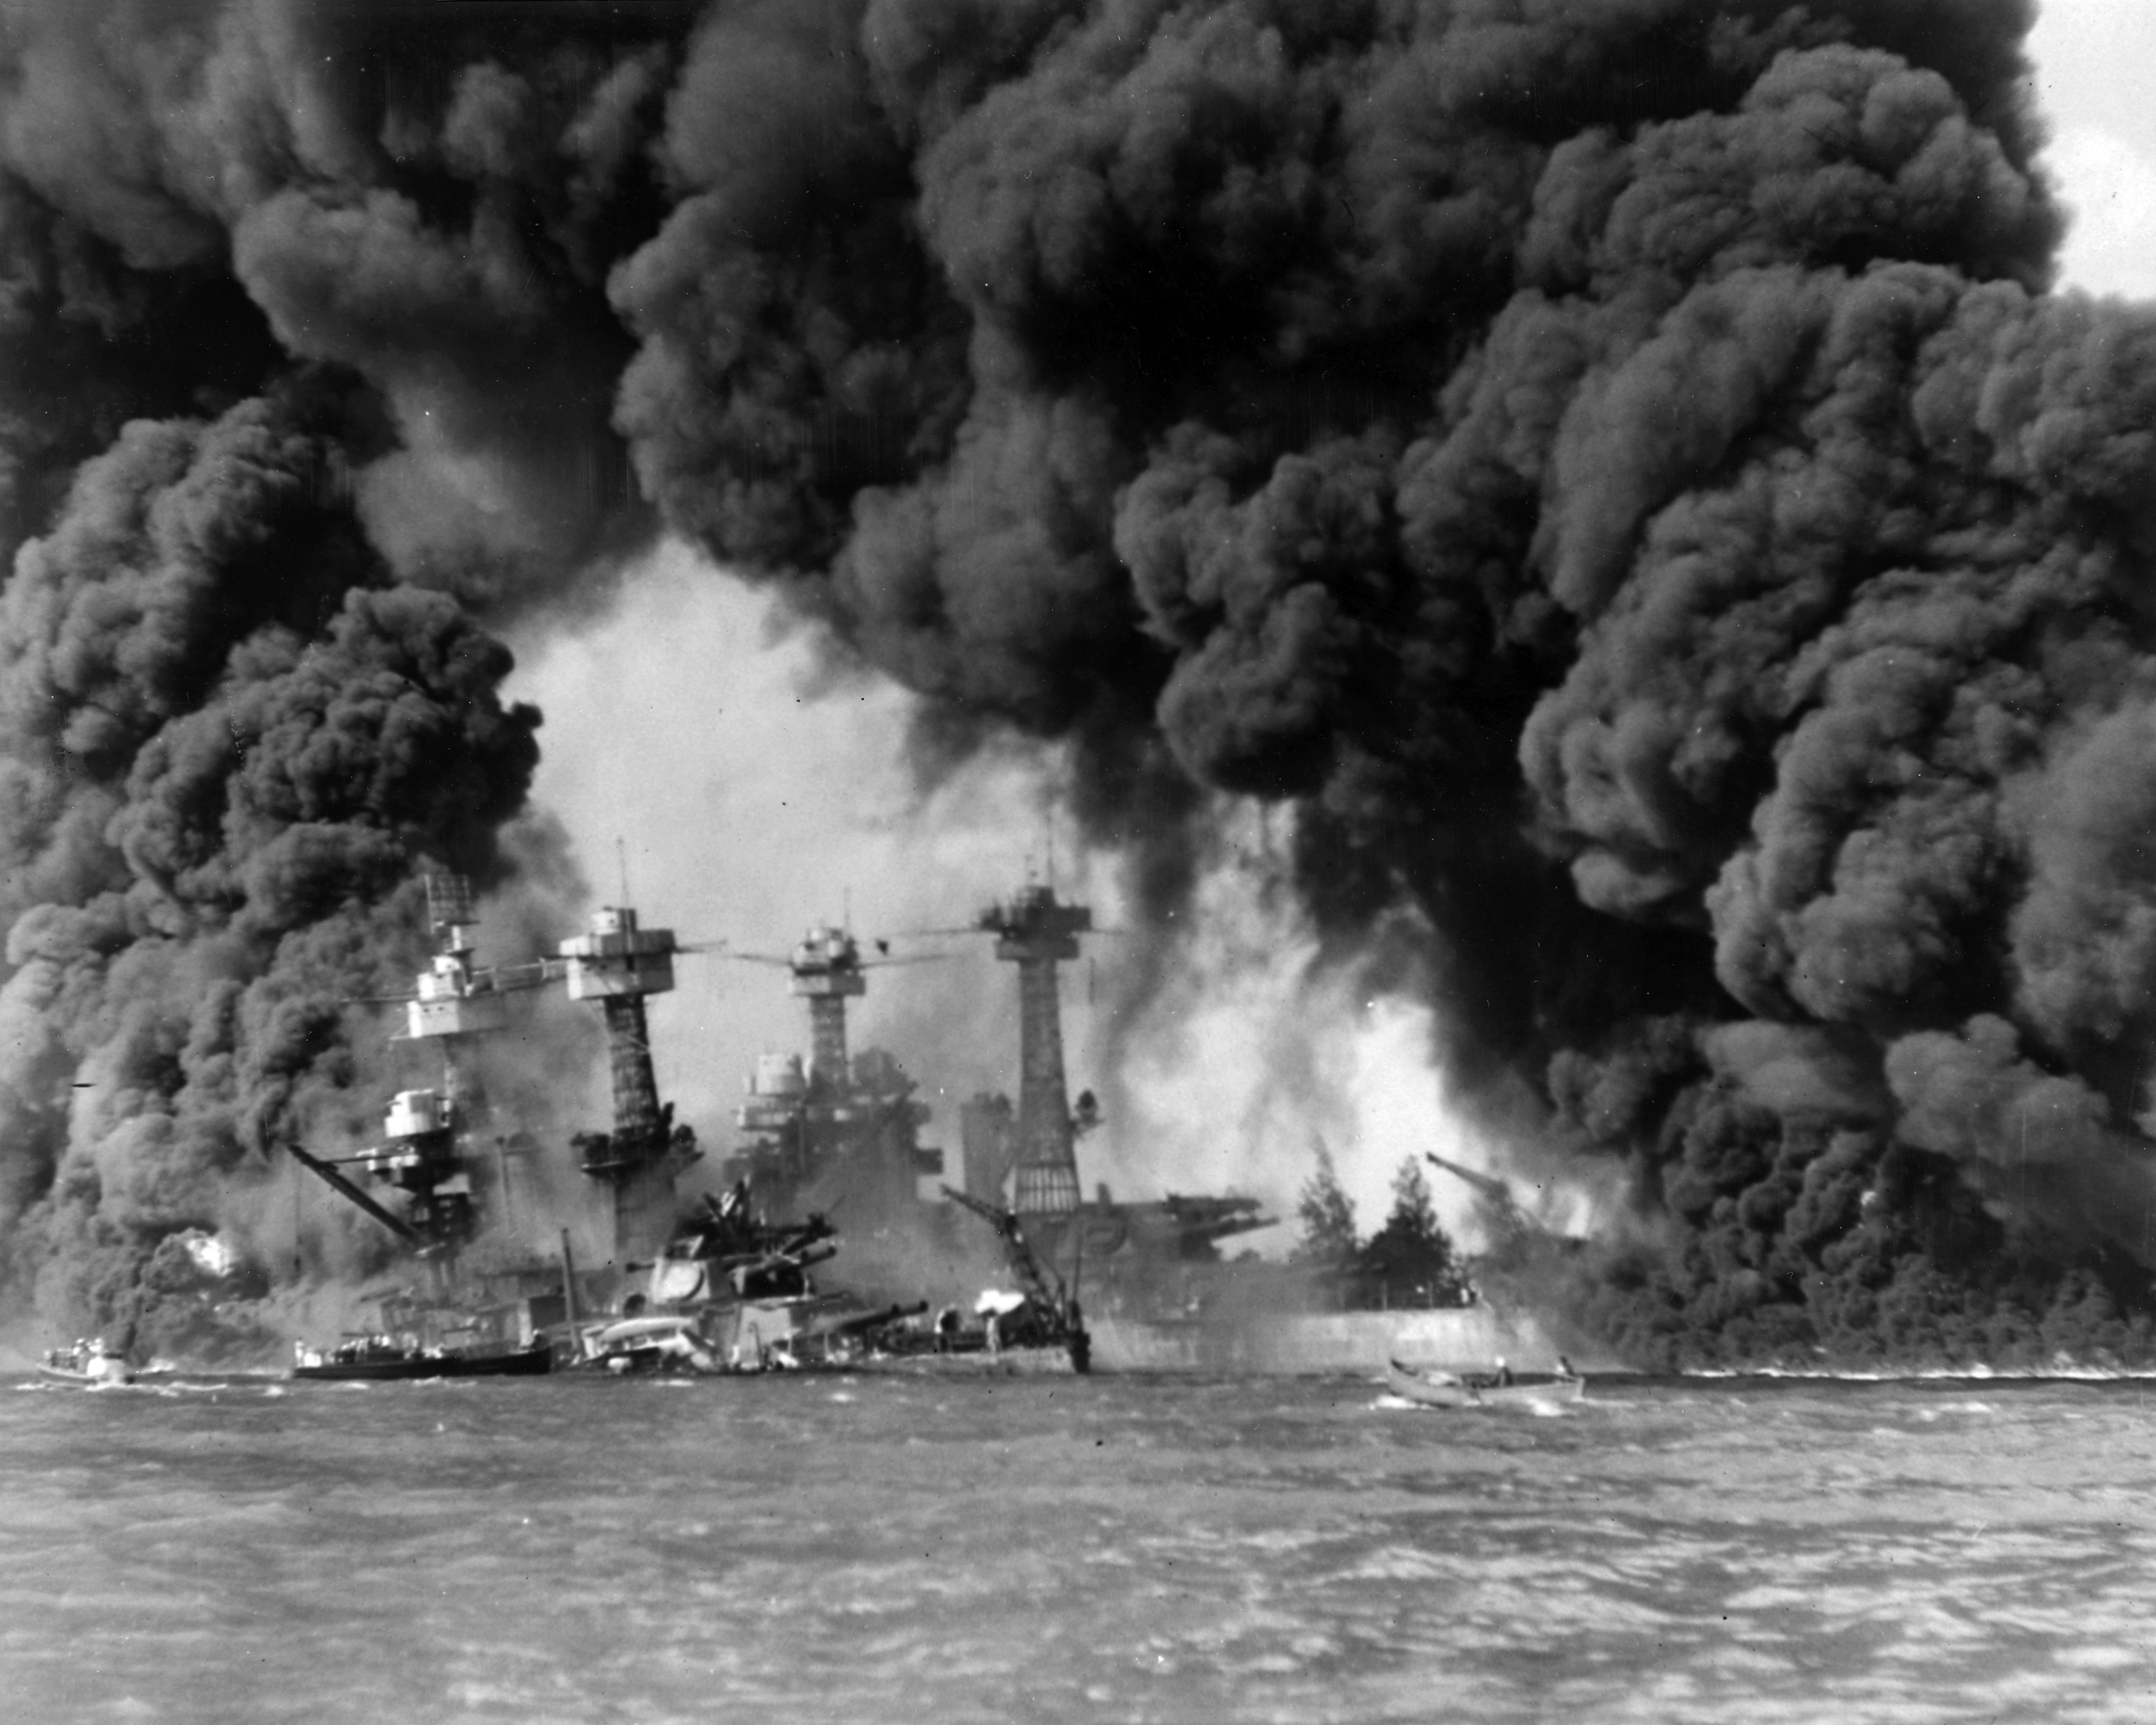 http://upload.wikimedia.org/wikipedia/commons/0/05/Burning_ships_at_Pearl_Harbor.jpg